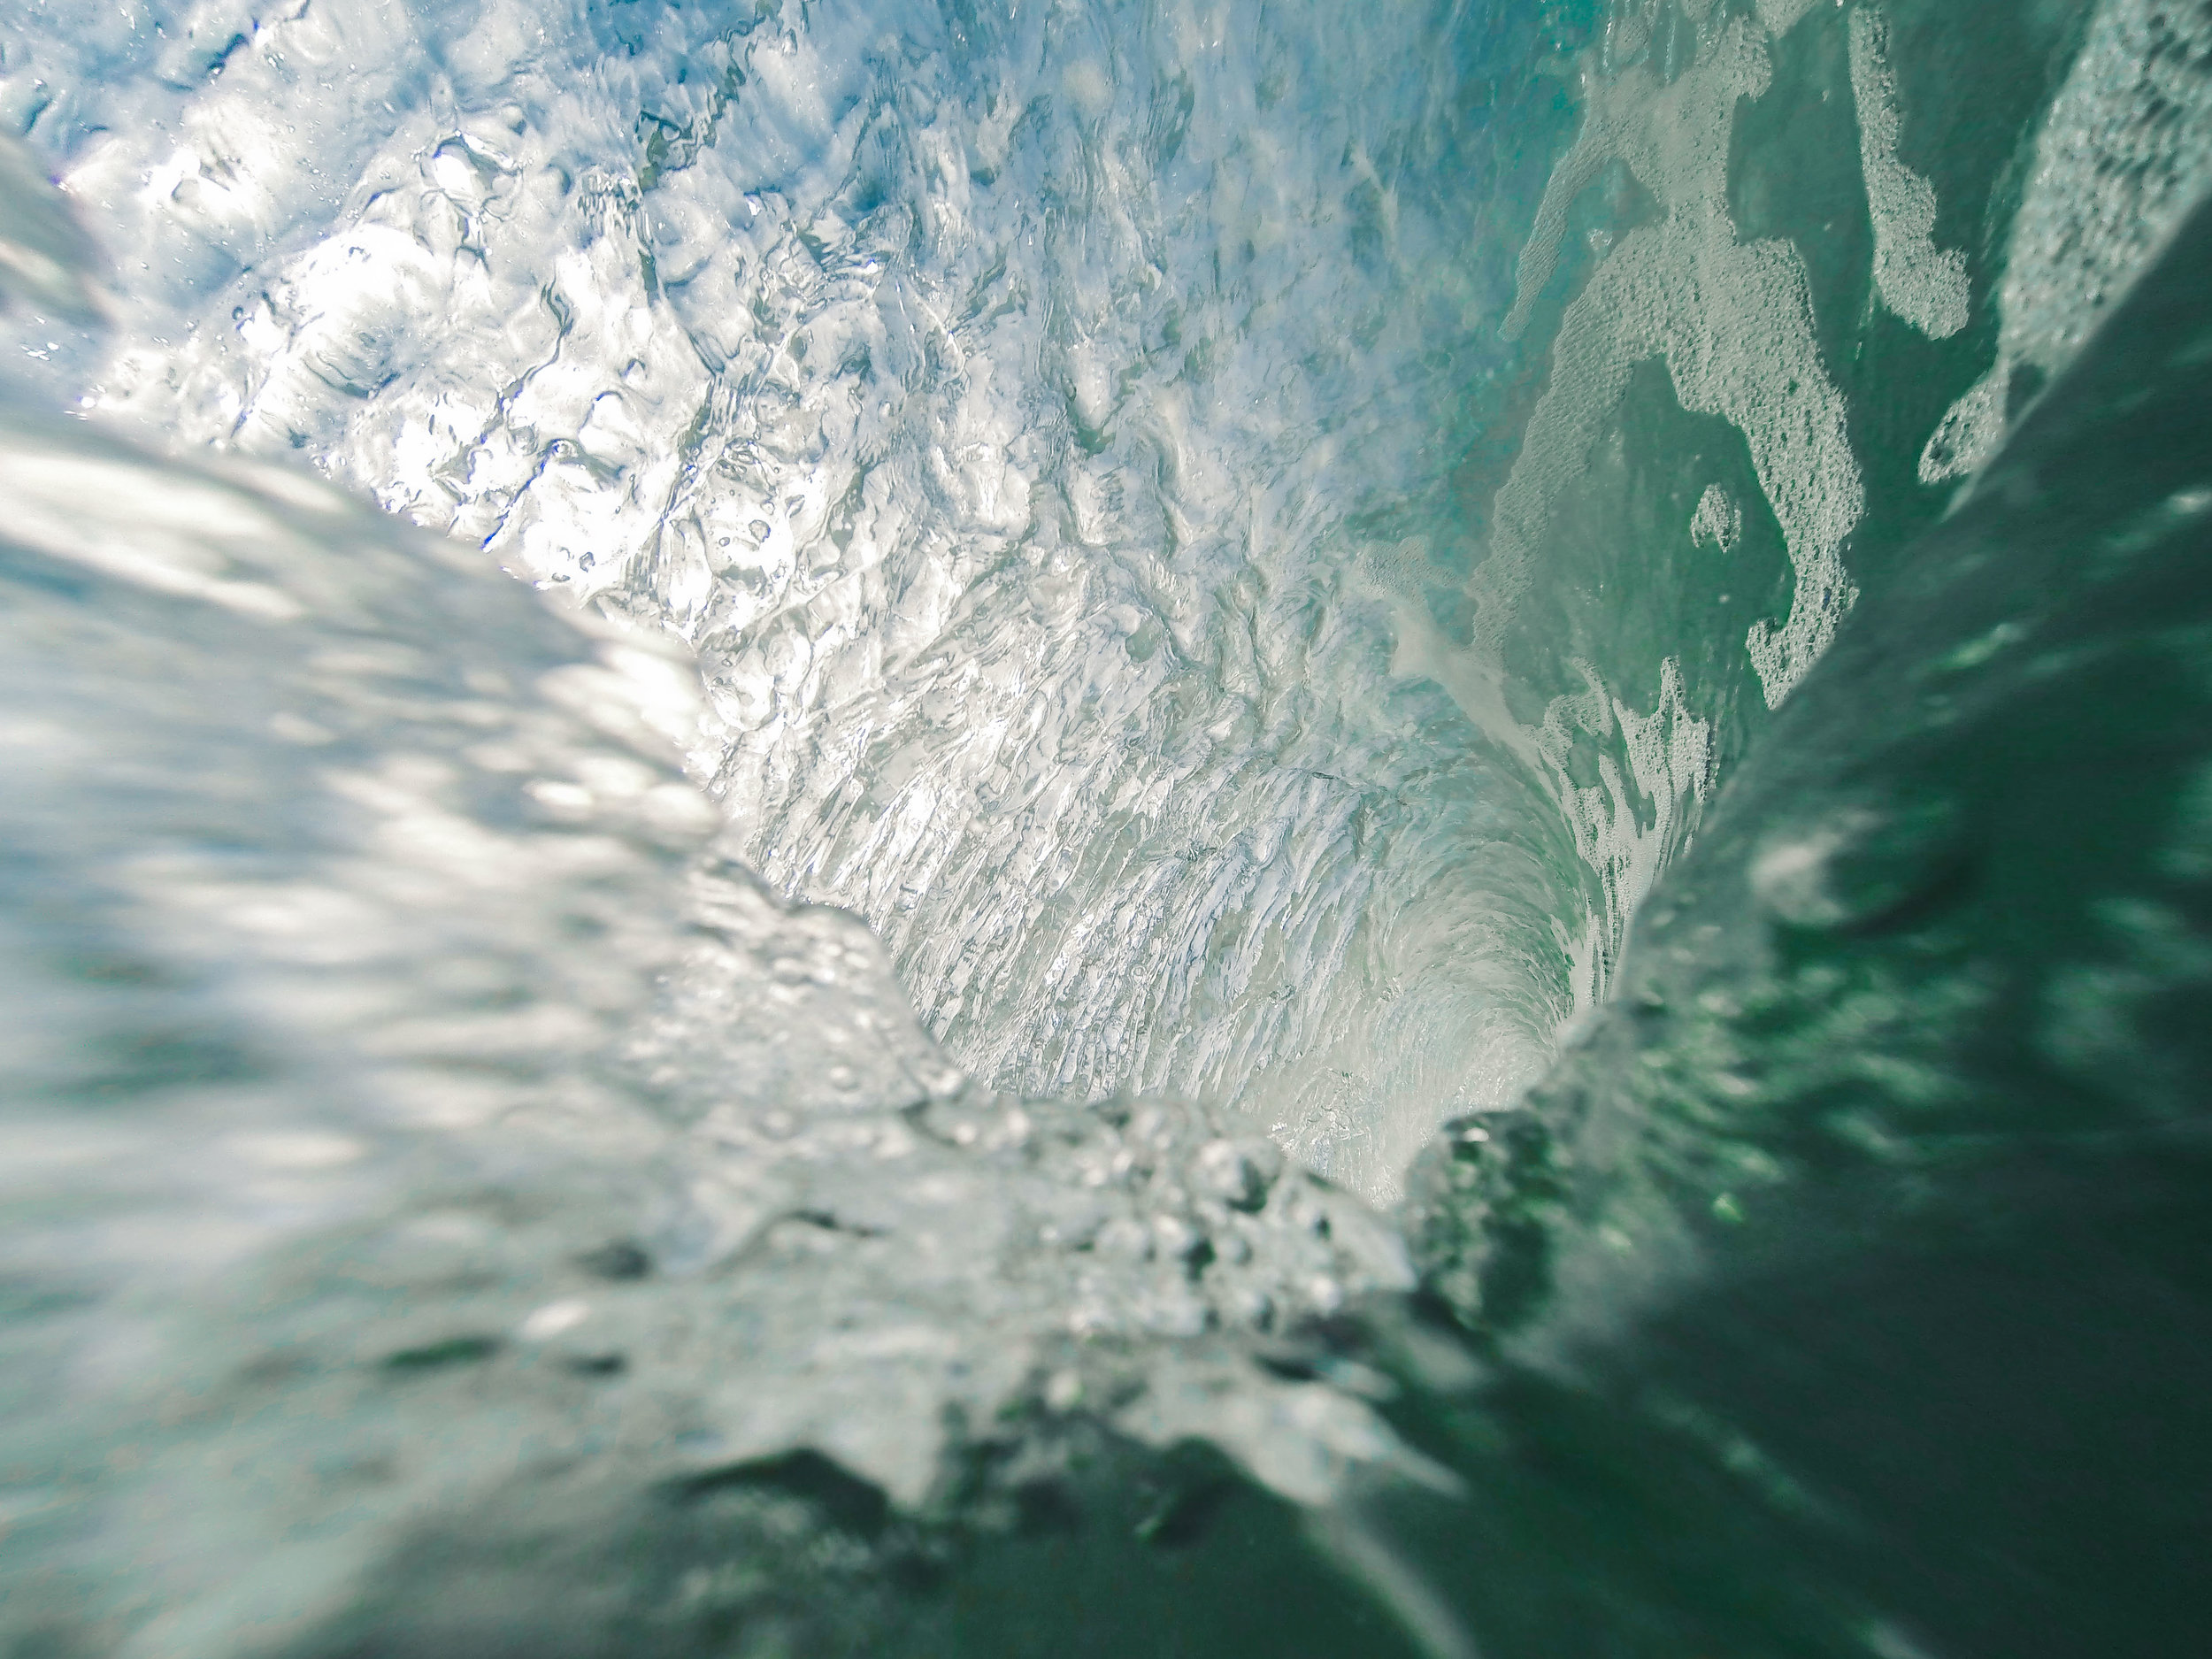 Wallpaper number 1 the inside of a Yorkshire wave, taken on my GoPro Hero 3 Black